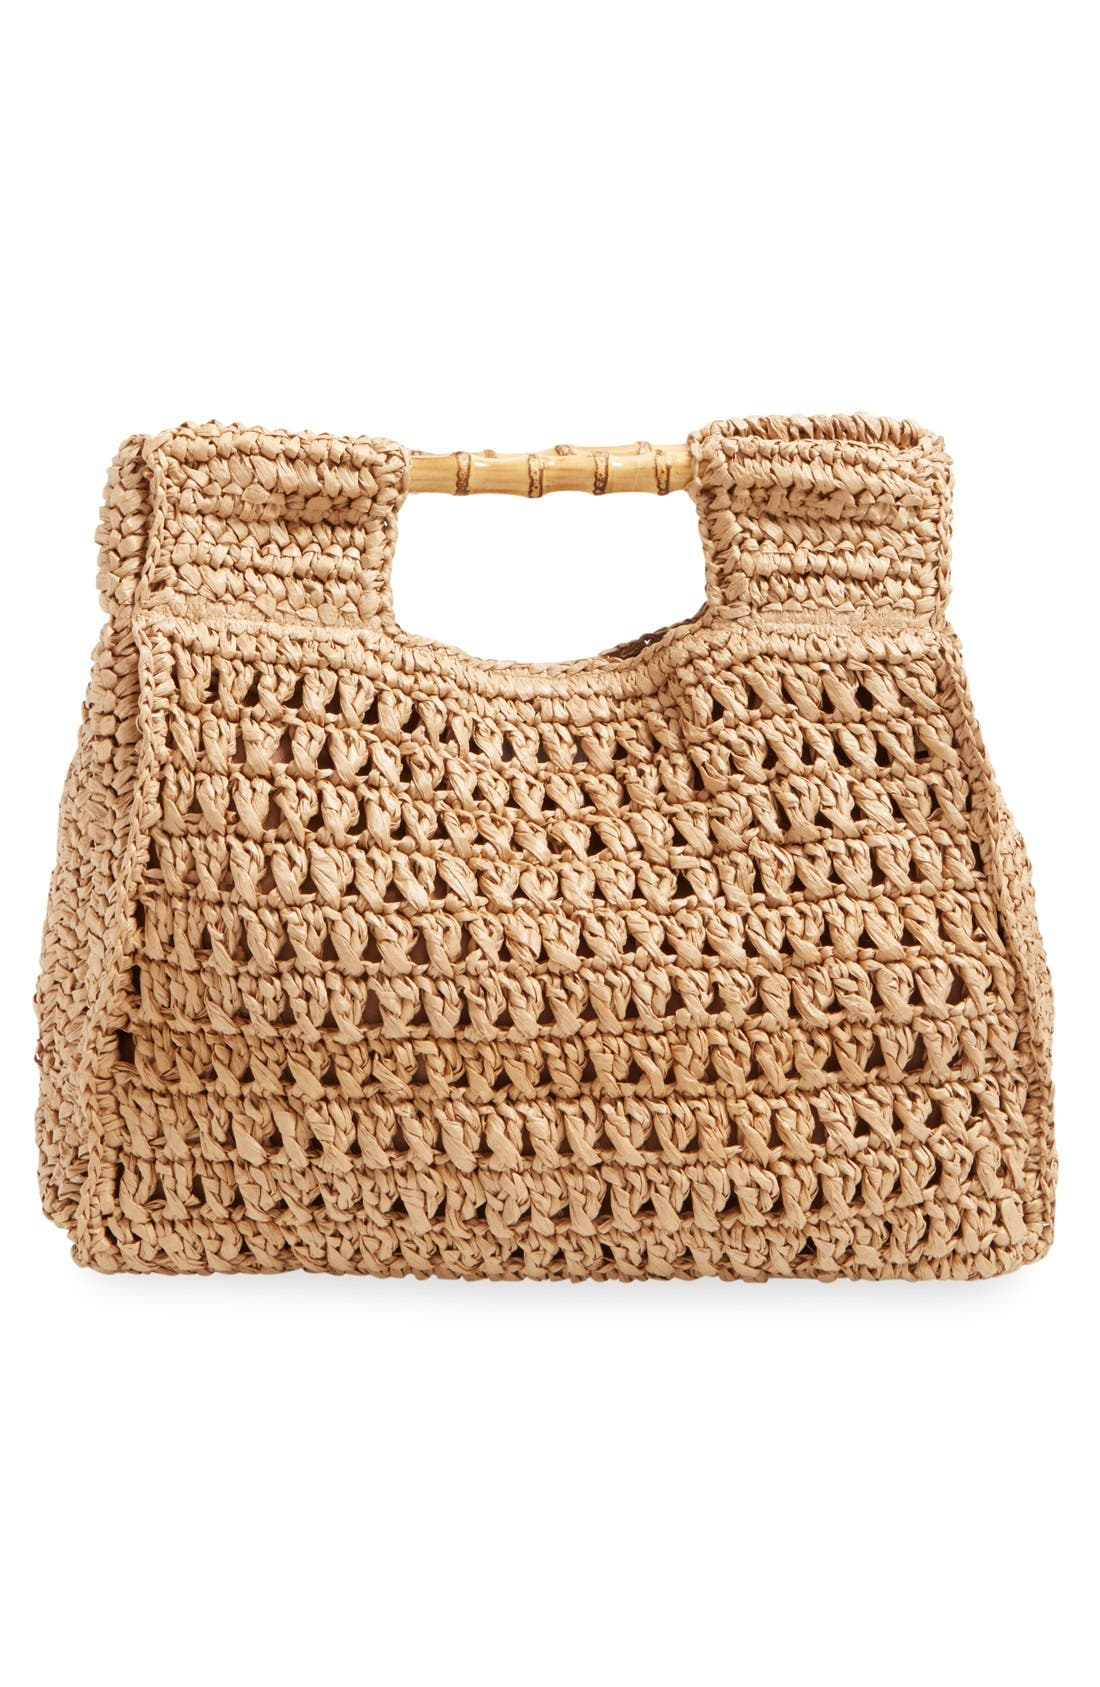 Woven Straw Tote,                             Alternate thumbnail 4, color,                             250